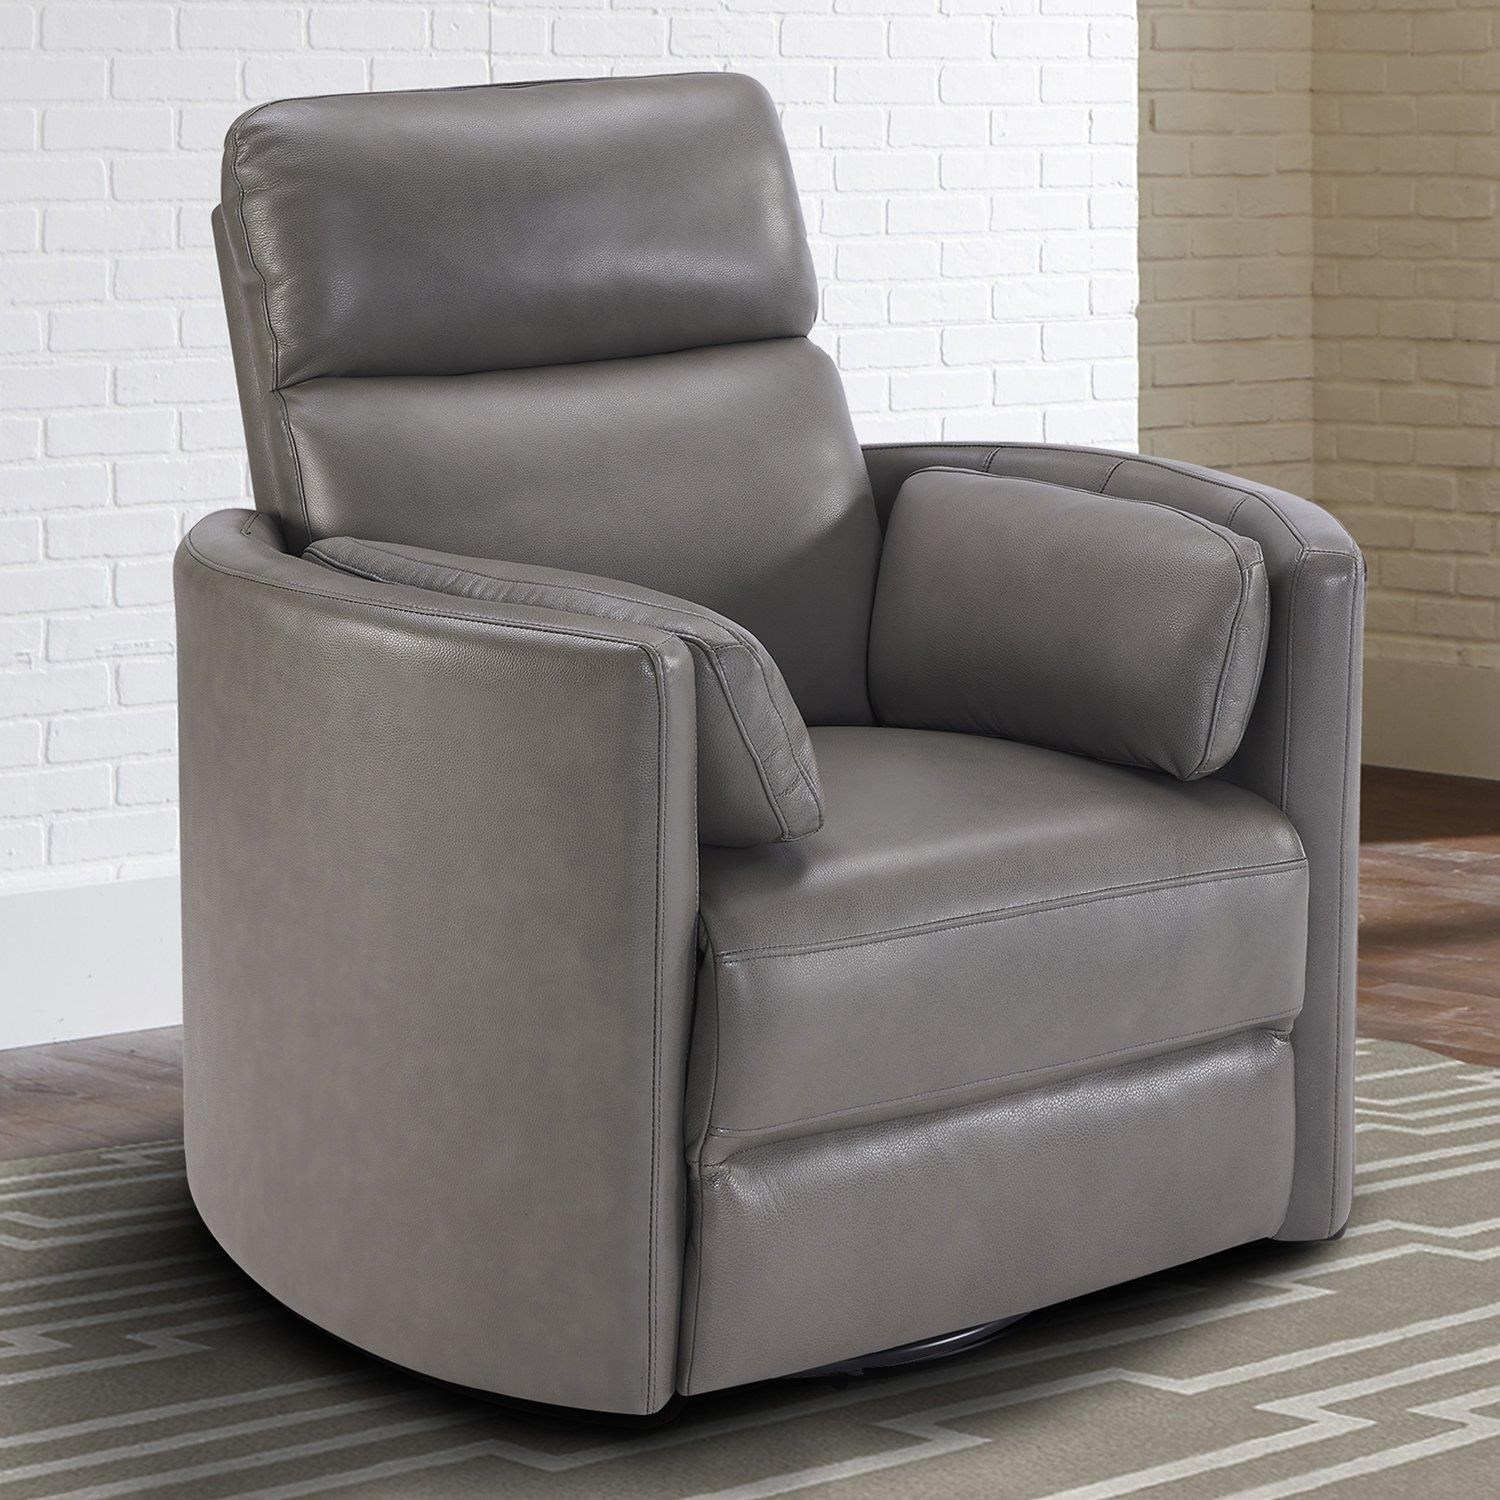 radius Power Cordless Swivel Glider Recliner by Parker House at Johnny Janosik